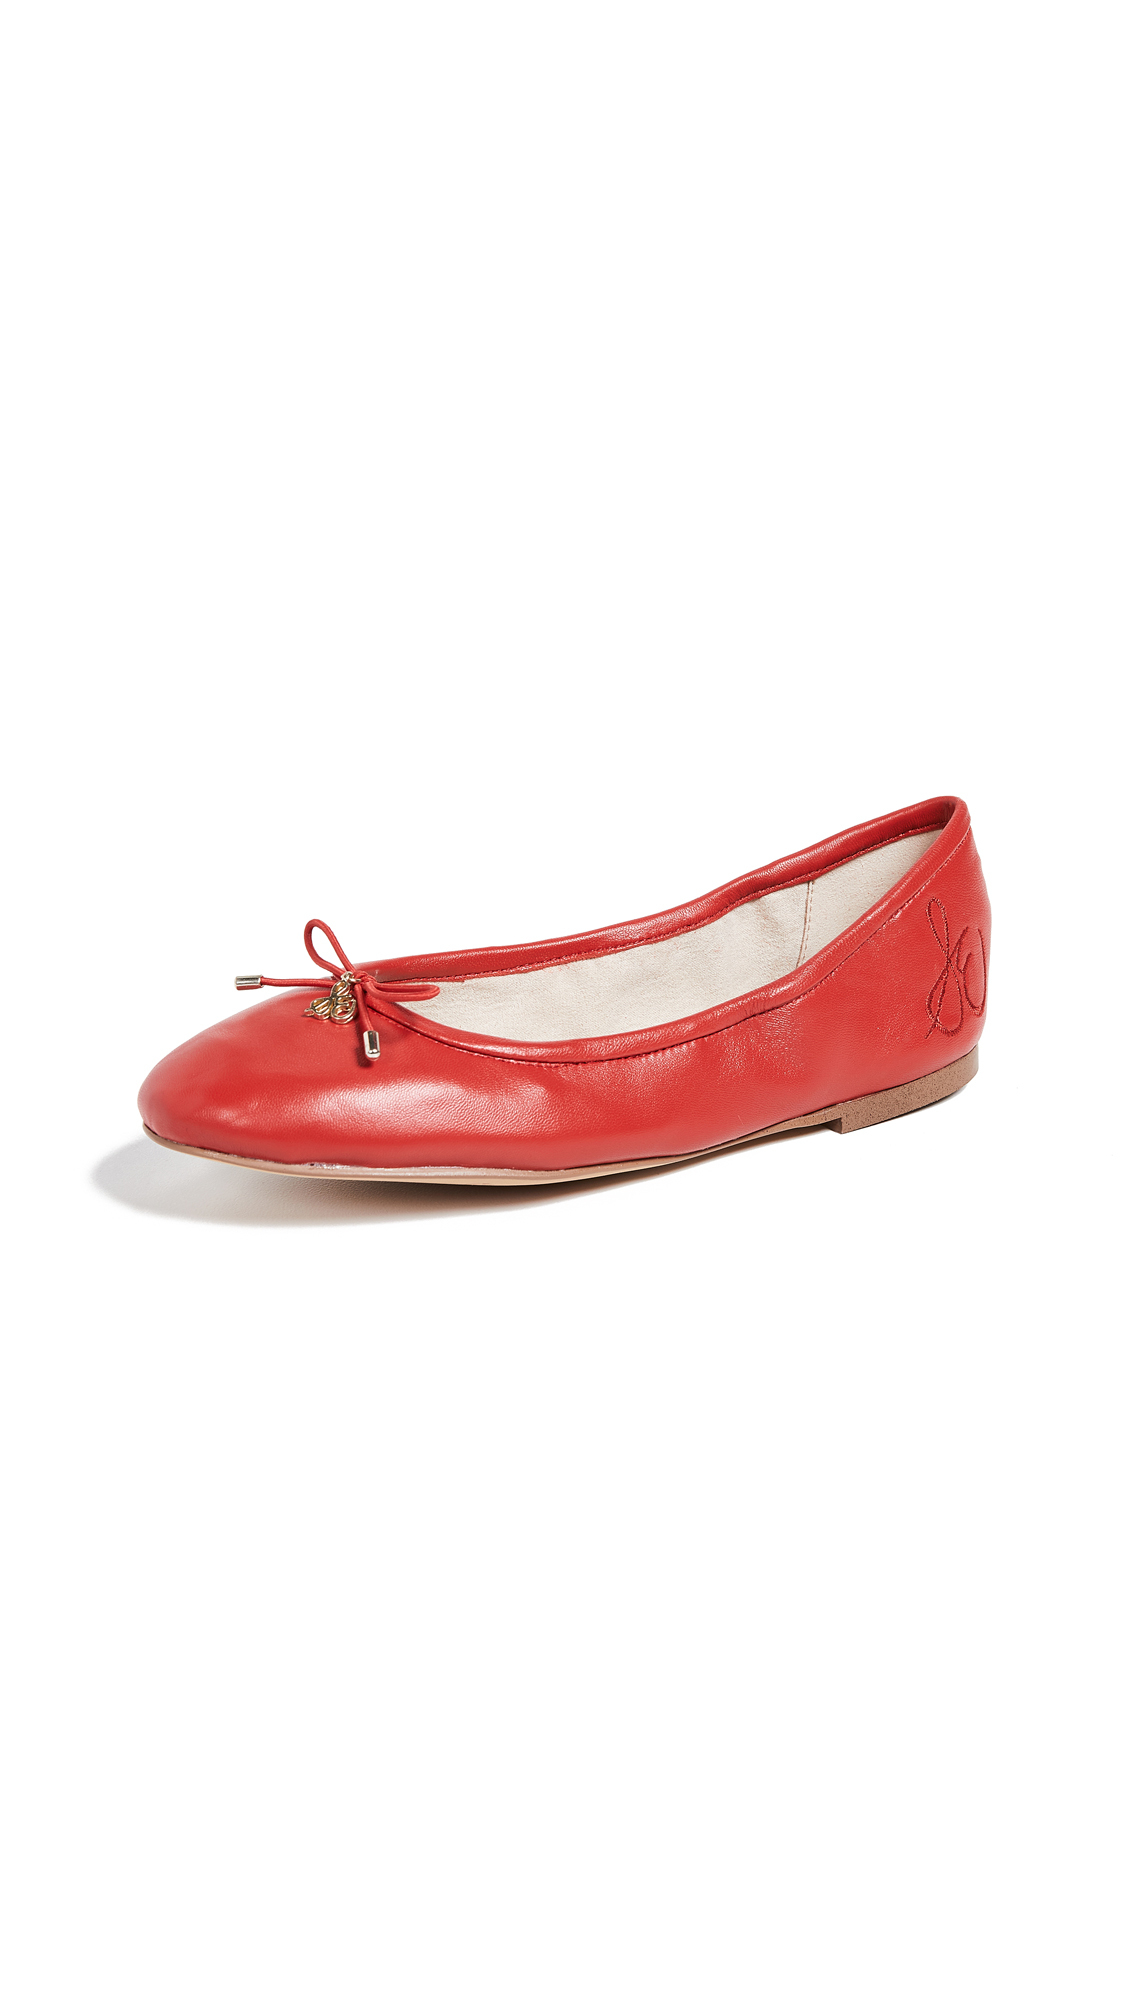 Sam Edelman Felicia Flats - Candy Red